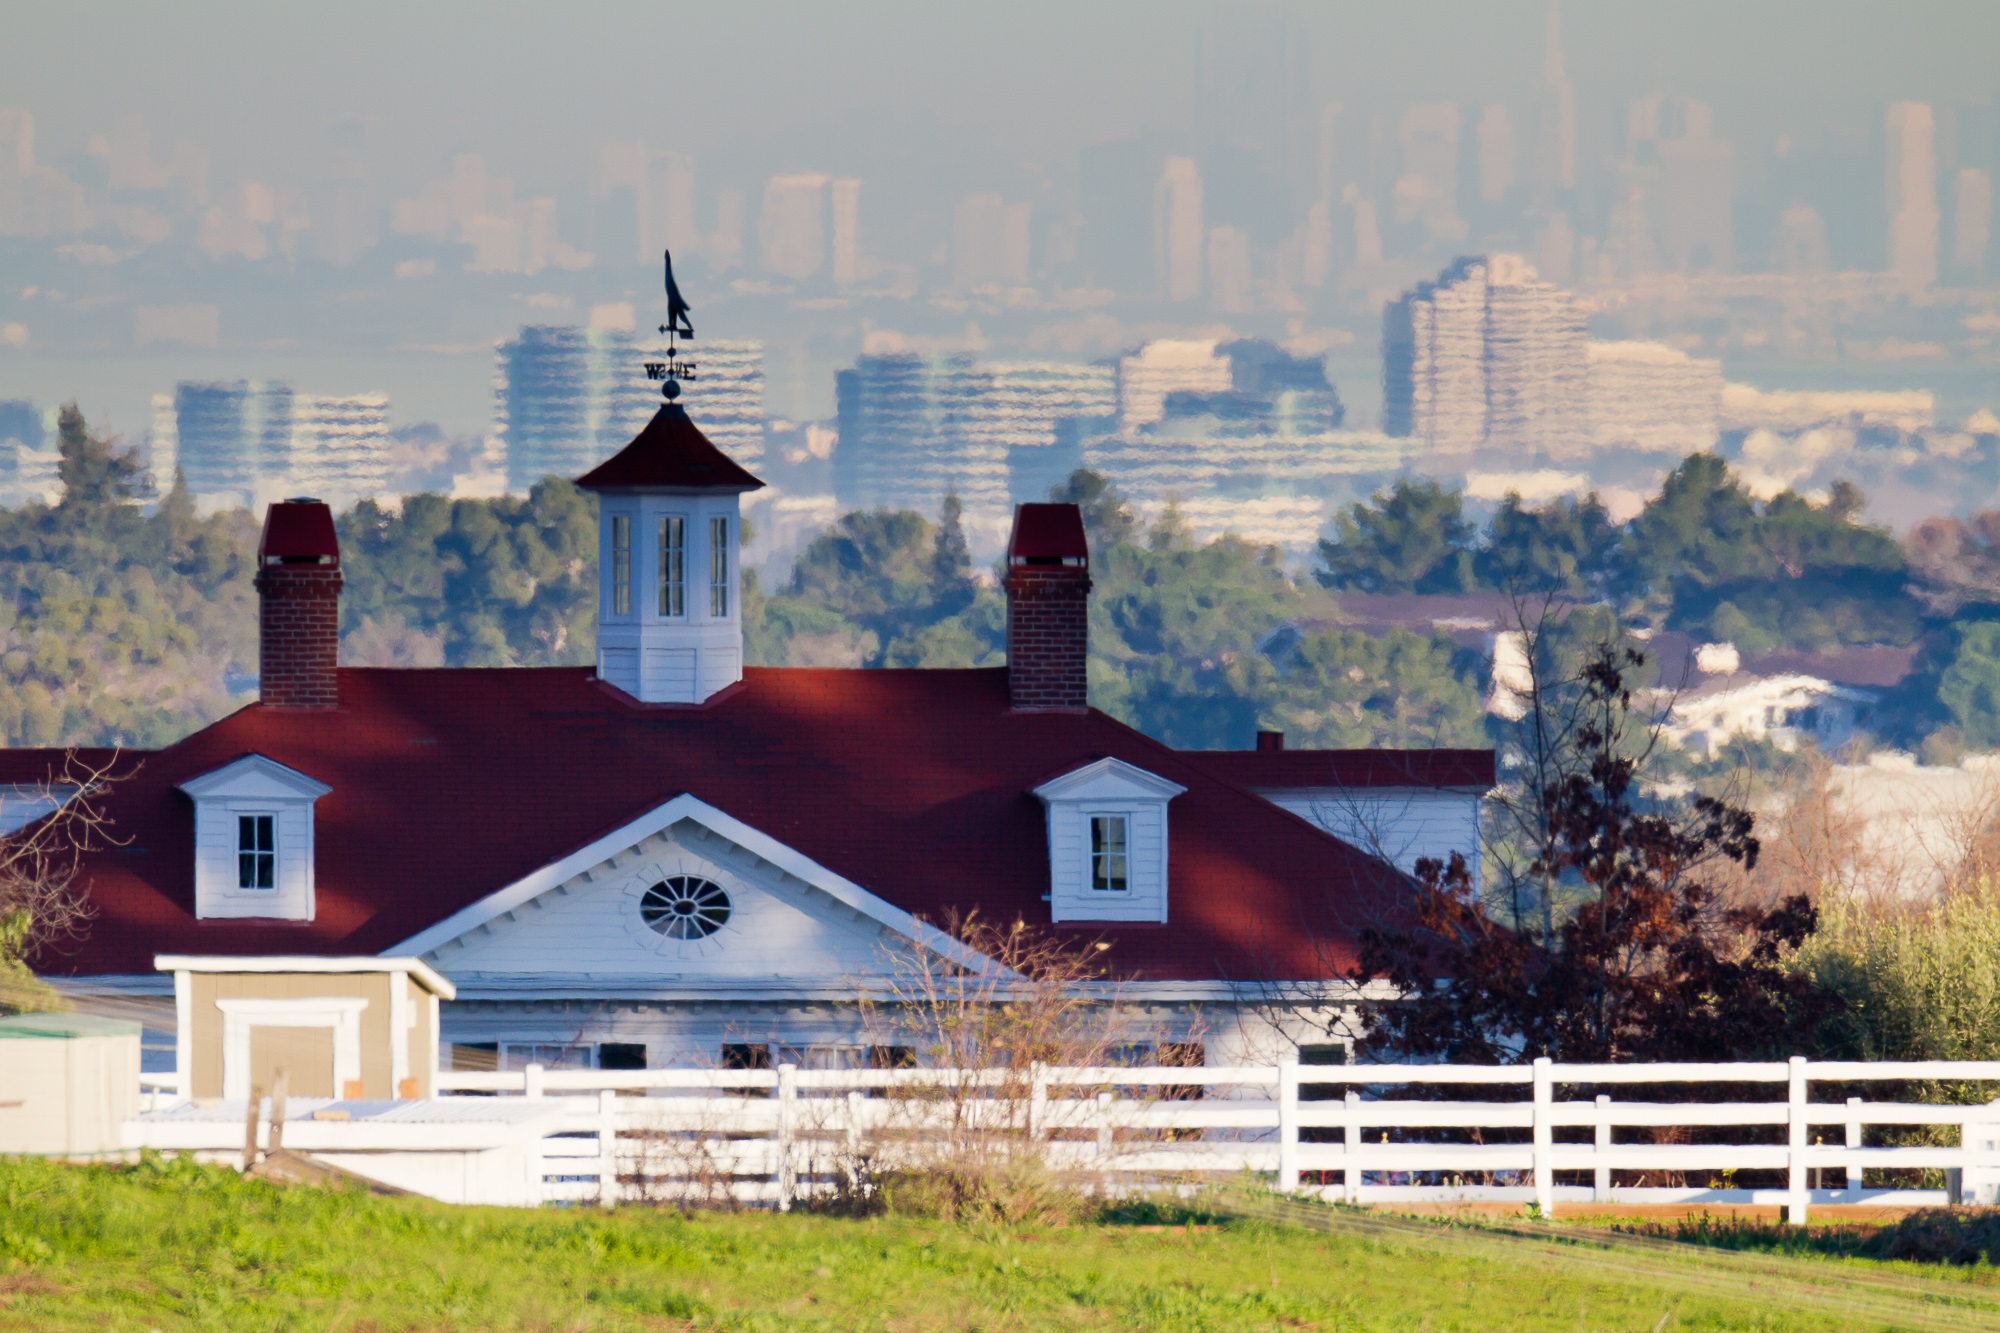 A view of a Palo Alto home includes the city of San Mateo in the midground and San Francisco in the background.  The view is compressed using a long telephoto lens.